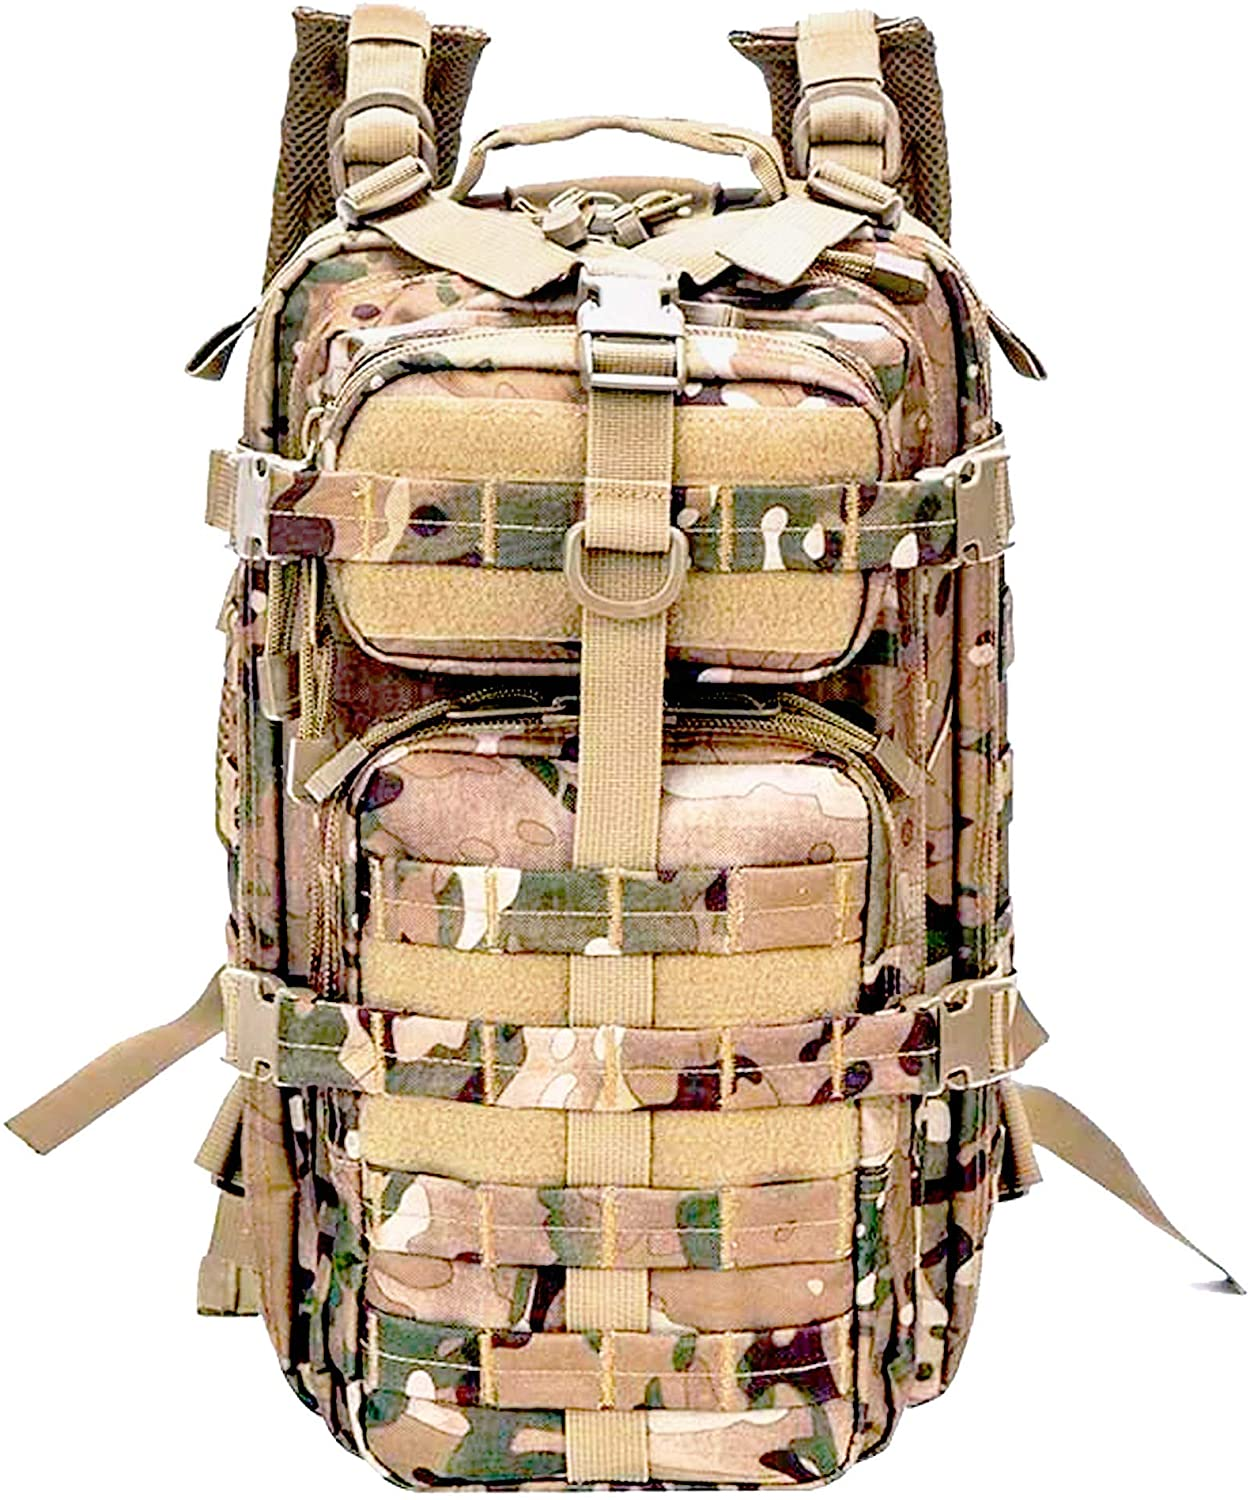 Scorpion Tactics Small Assault Backpack Small Military Tactical Backpack Army Assault Rucksack Pack Bug Out Bag ST-SAB202001